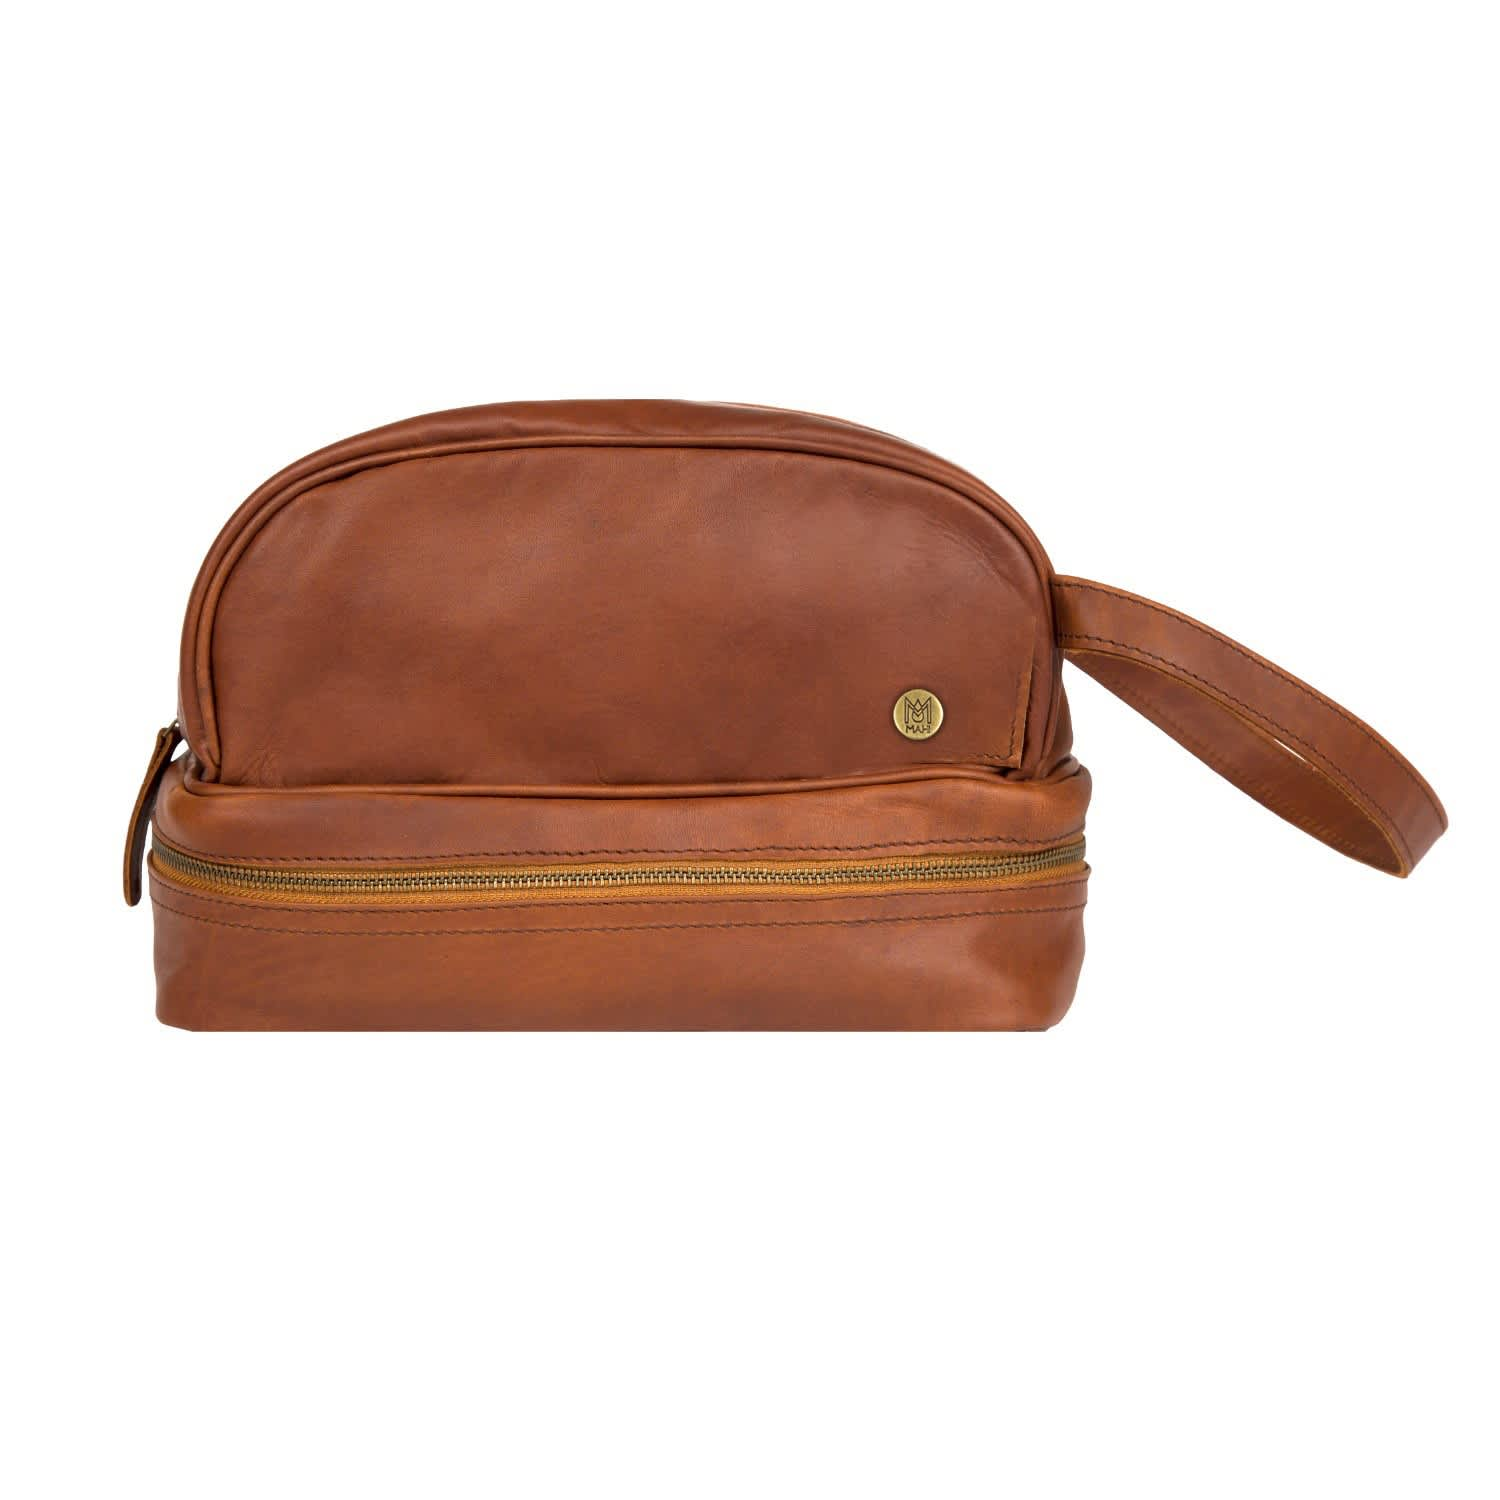 827dcc5480 Leather Raleigh Toiletry Bag In Vintage Brown image